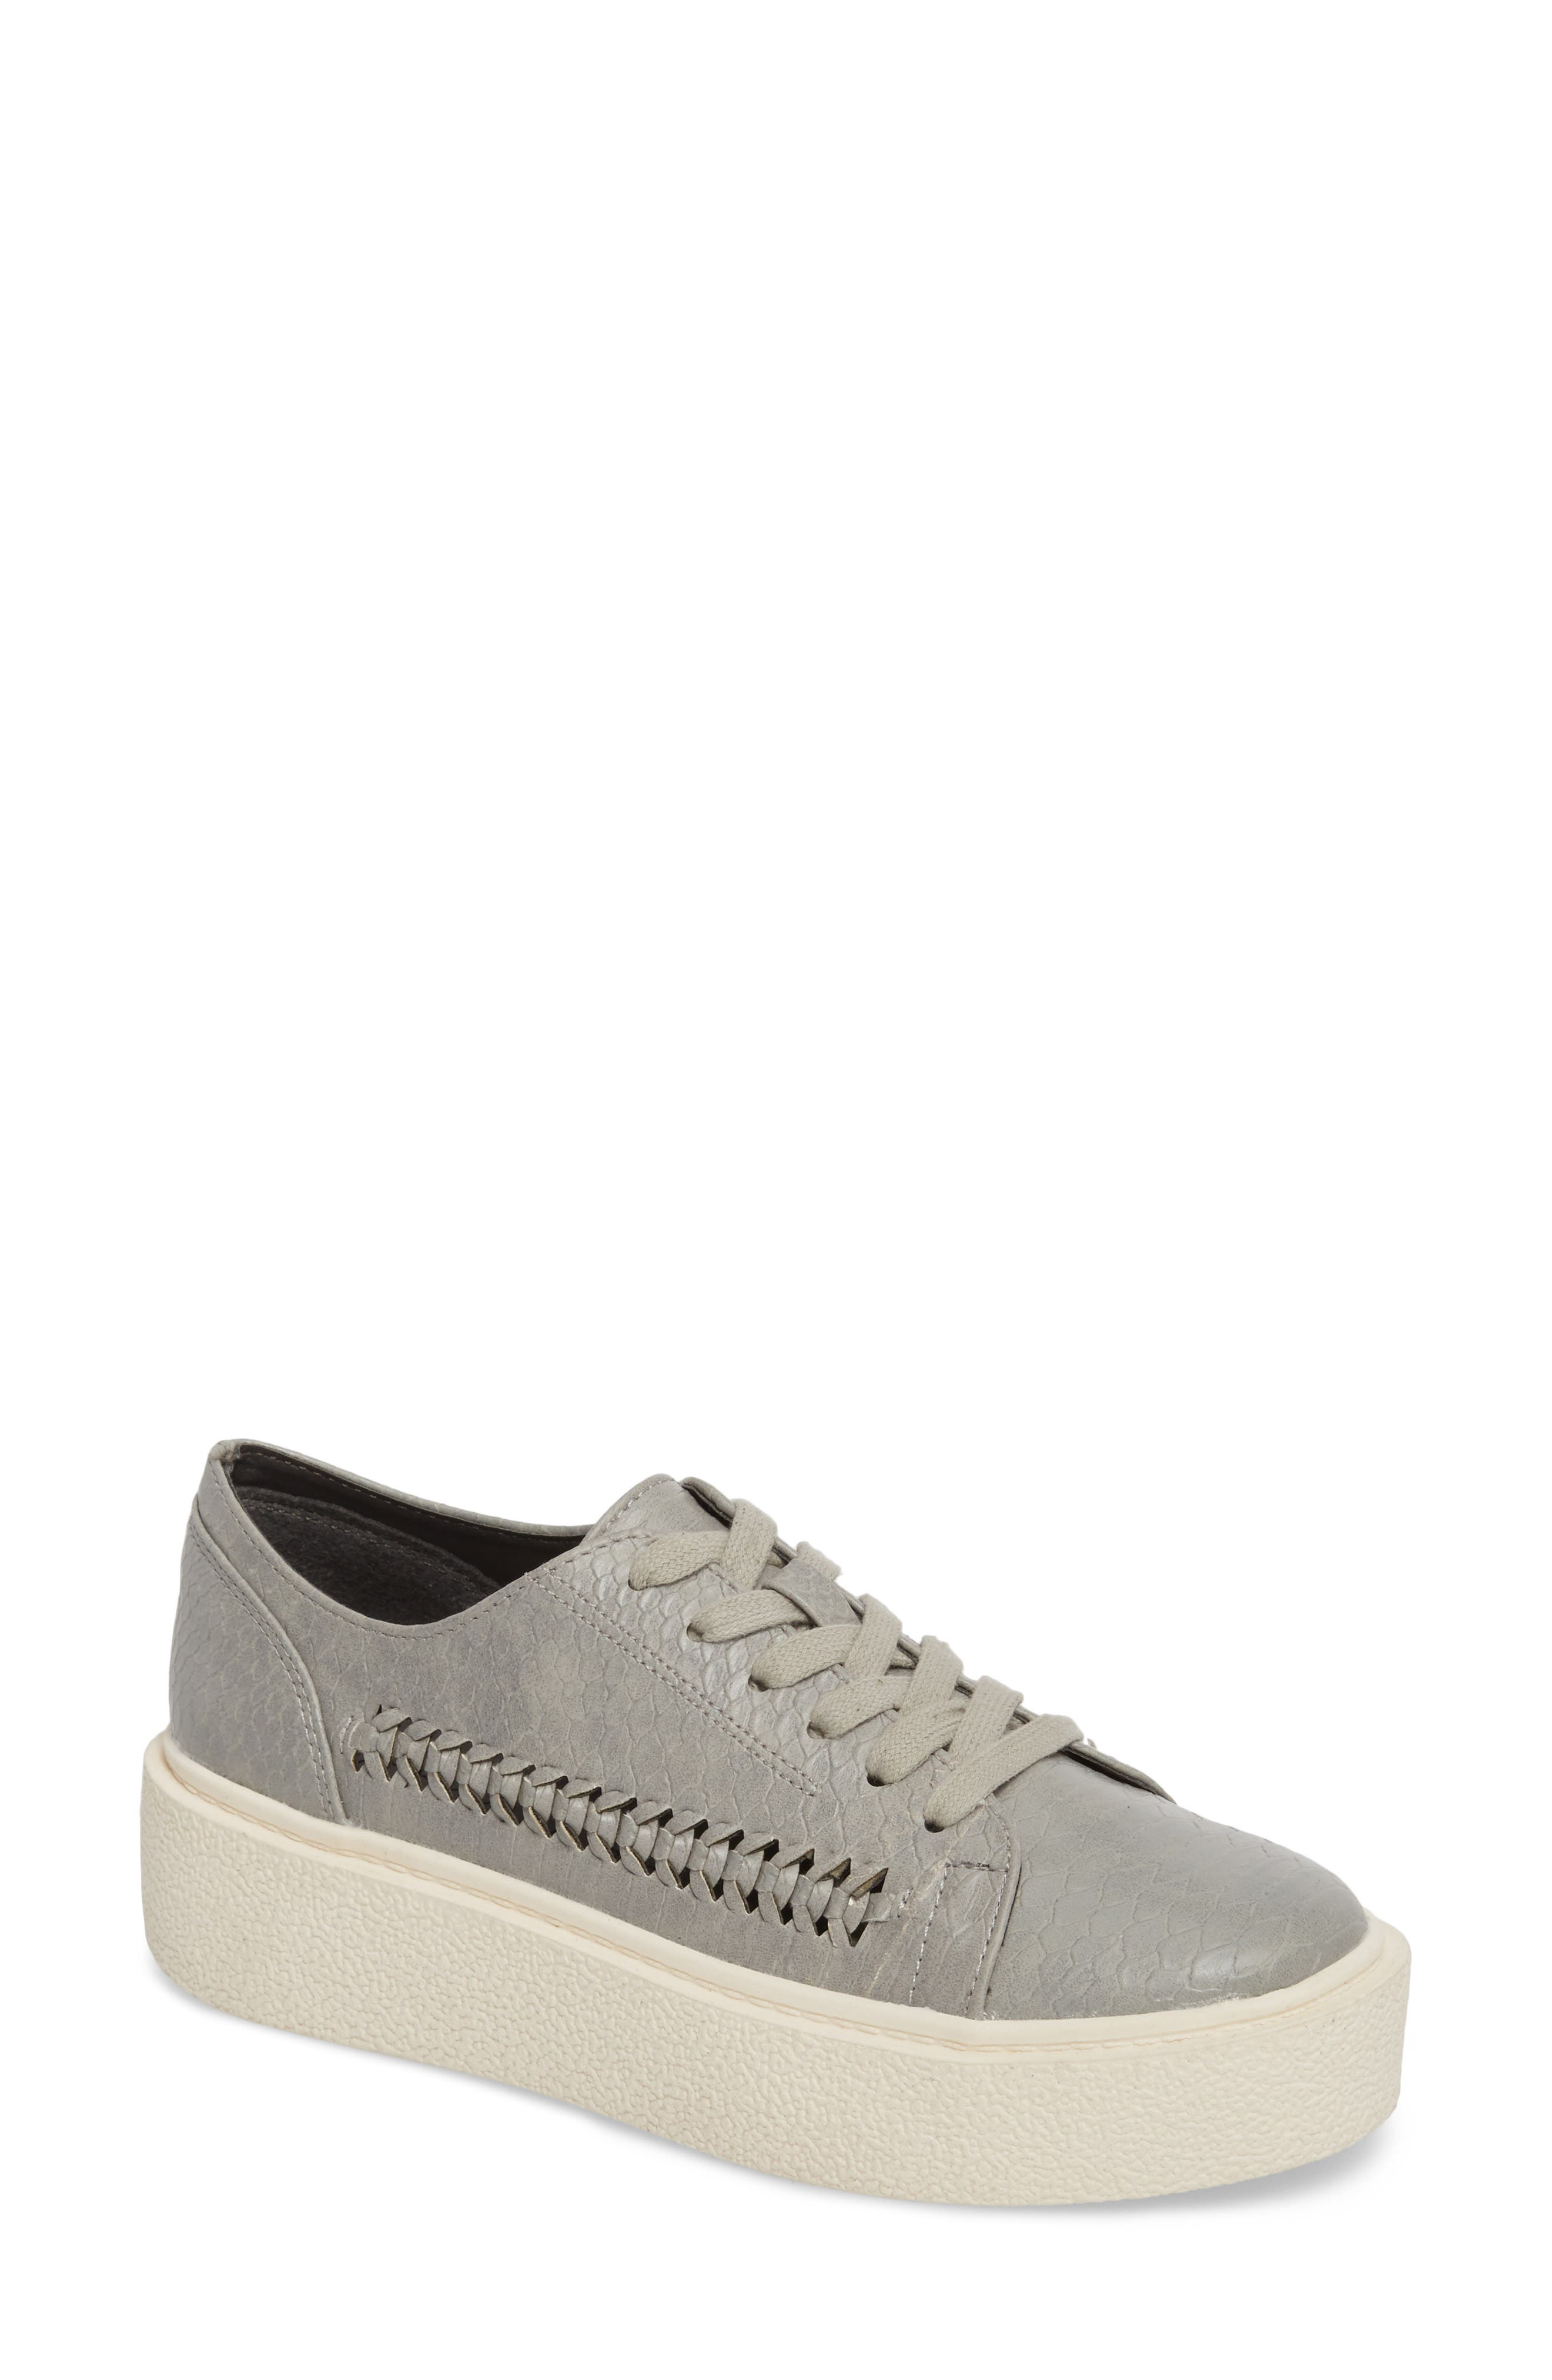 White Out Platform Sneaker,                         Main,                         color, Grey Fabric